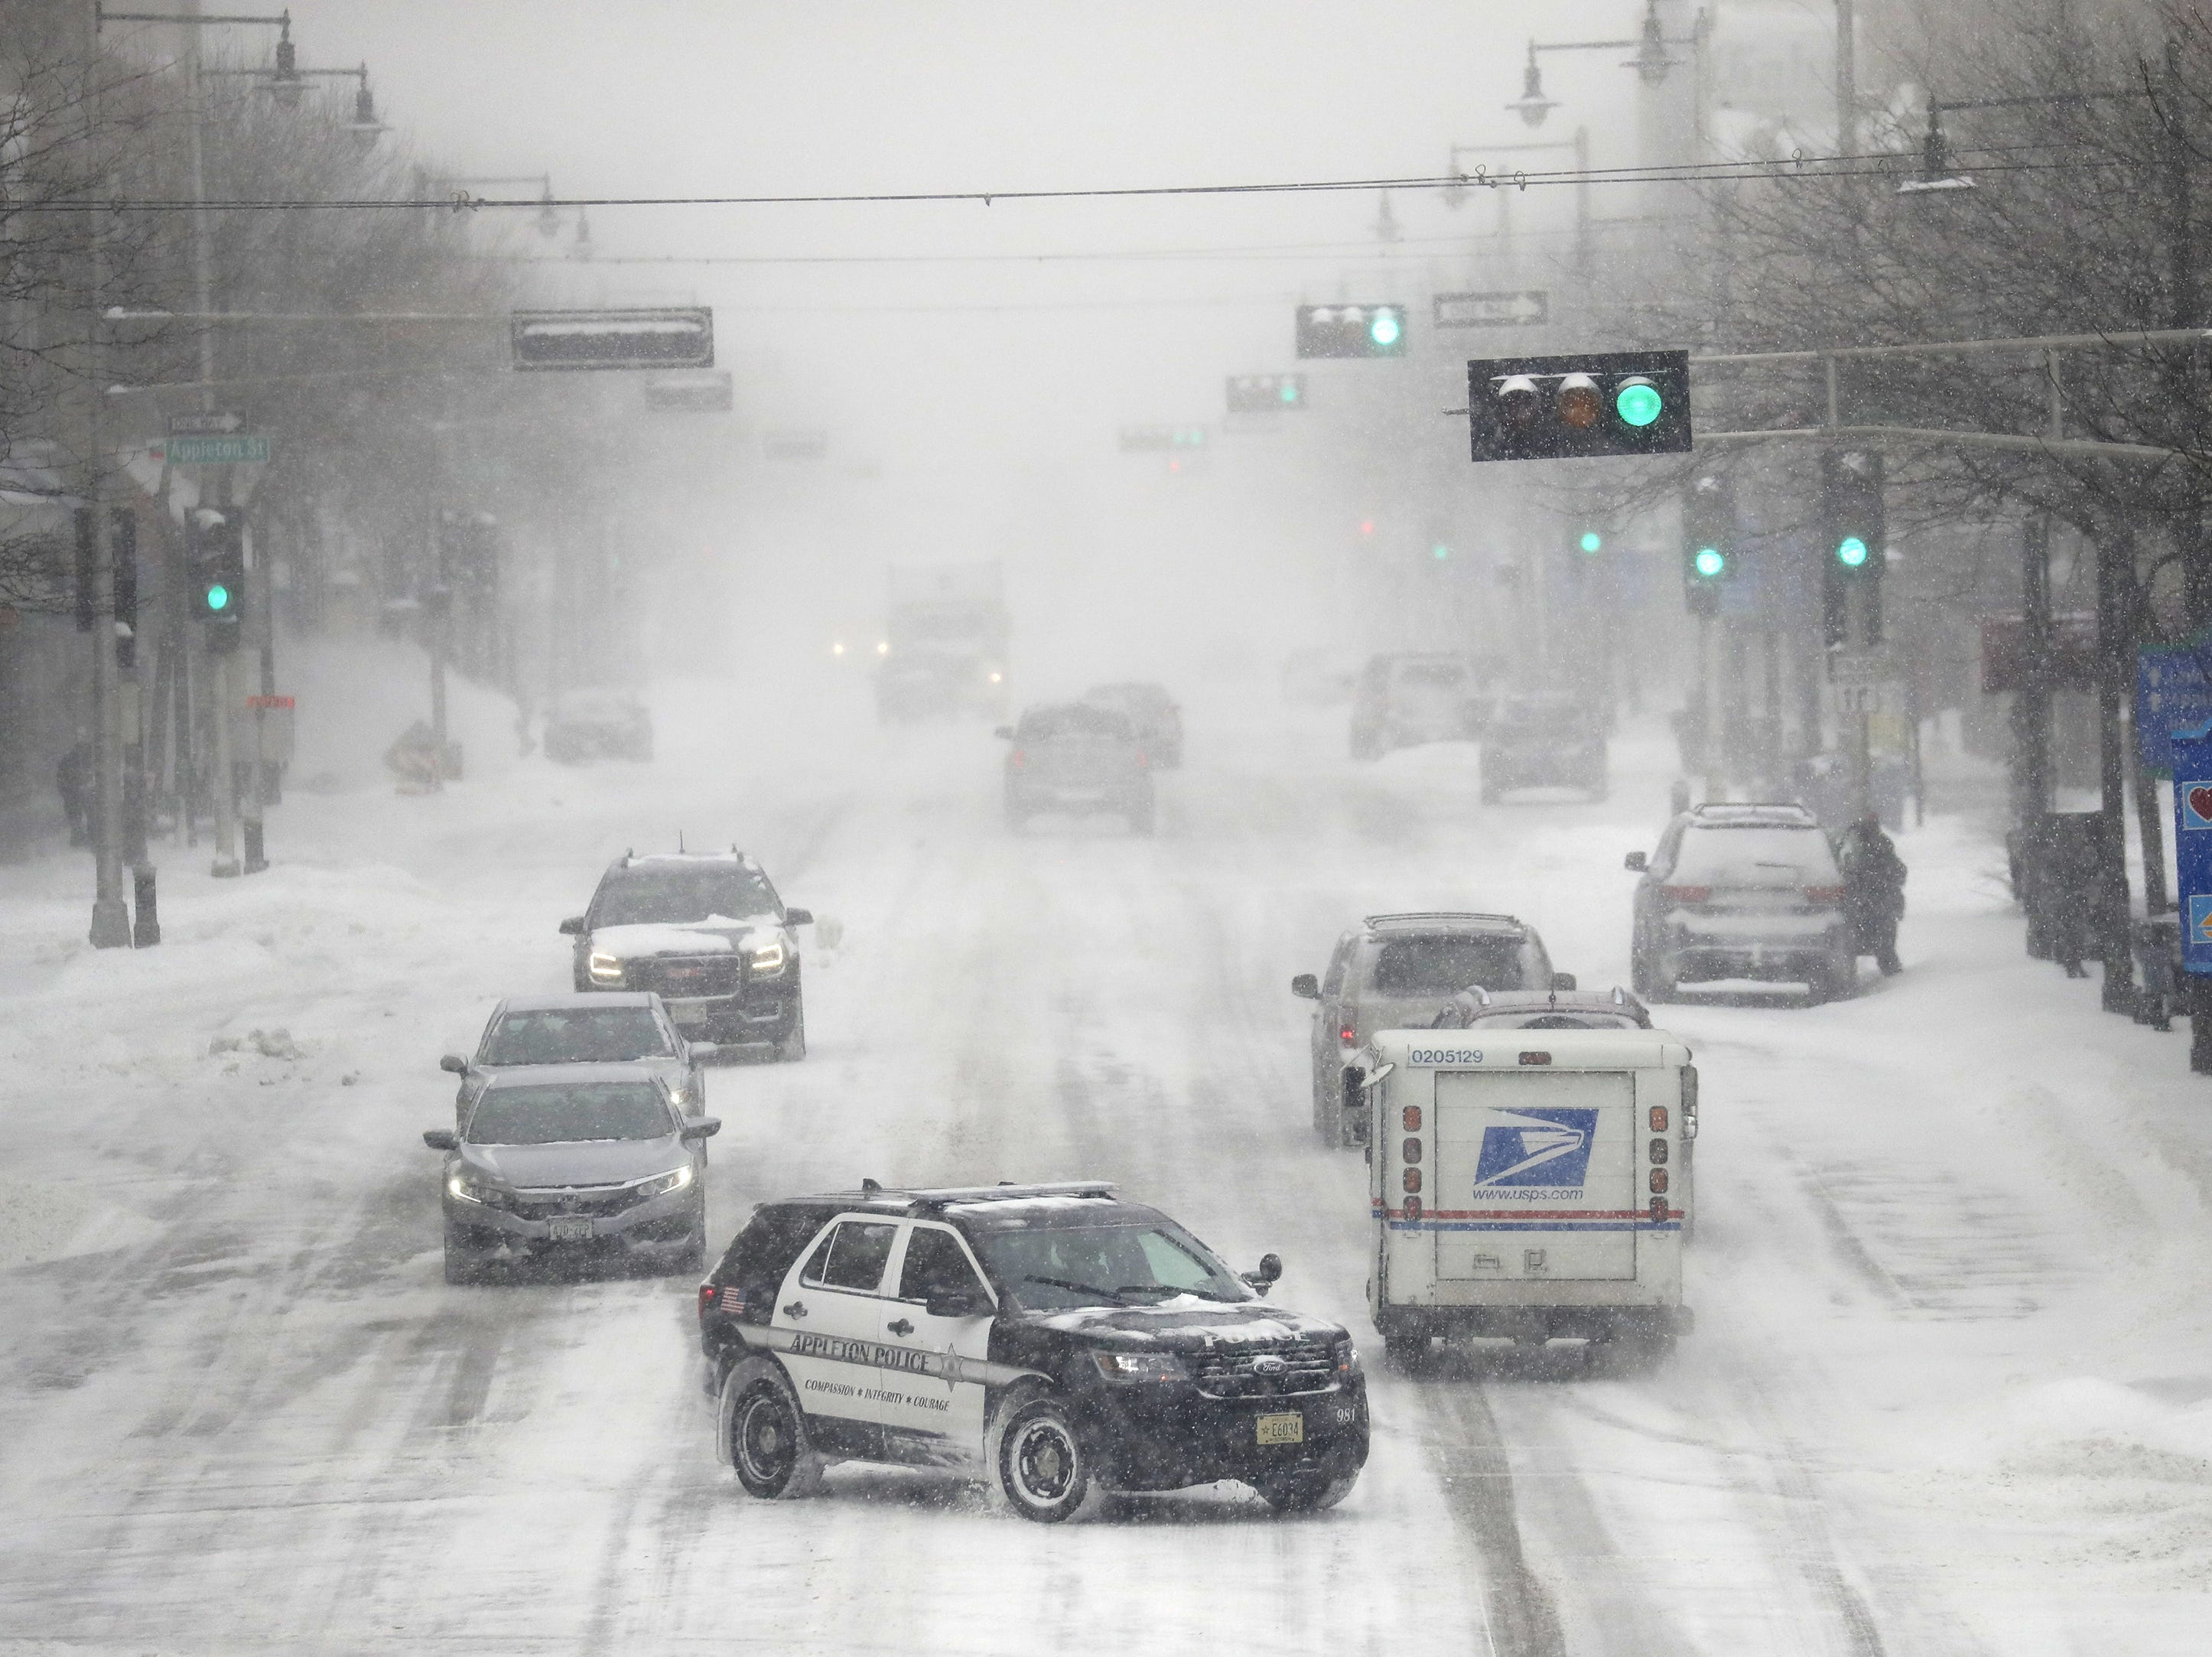 Traffic moves slowly along College Avenue during a snowstorm Monday, Jan. 28, 2019, in downtown Appleton, Wis.